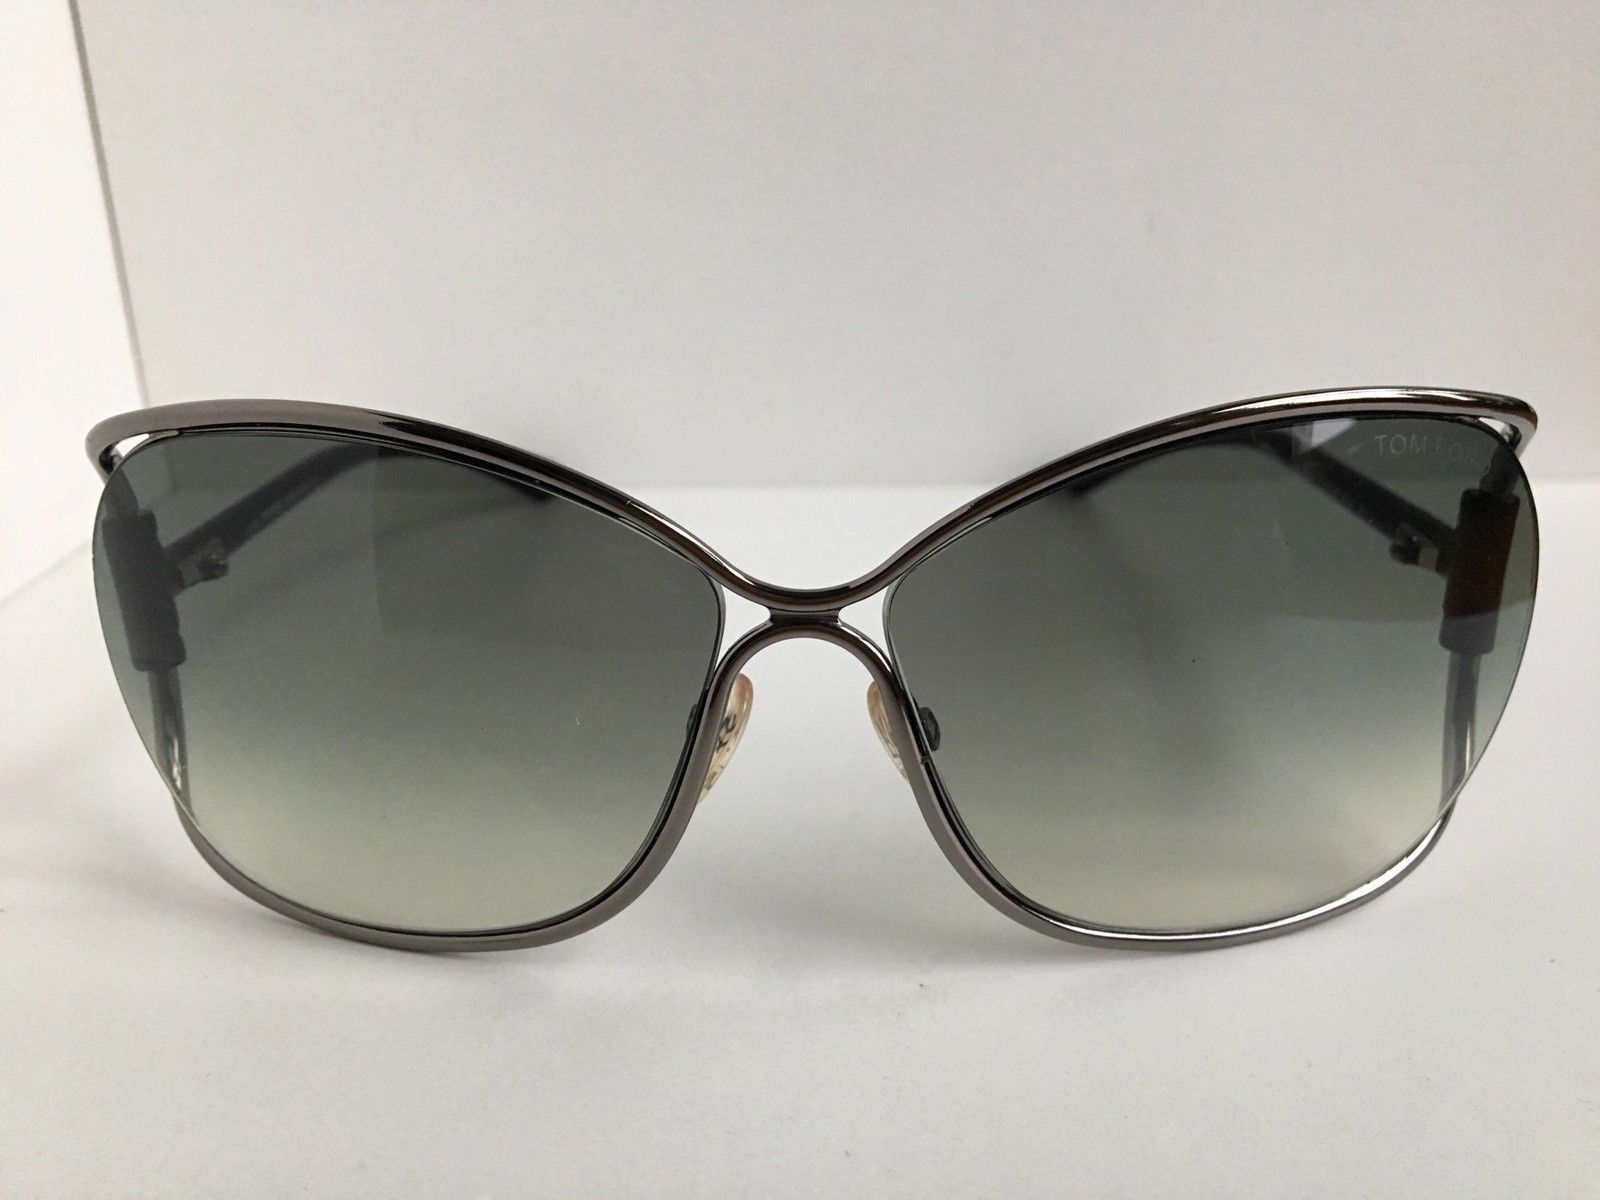 493c9067a7128 Tom Ford Clemence TF 158 TF158 08B 65mm and 50 similar items